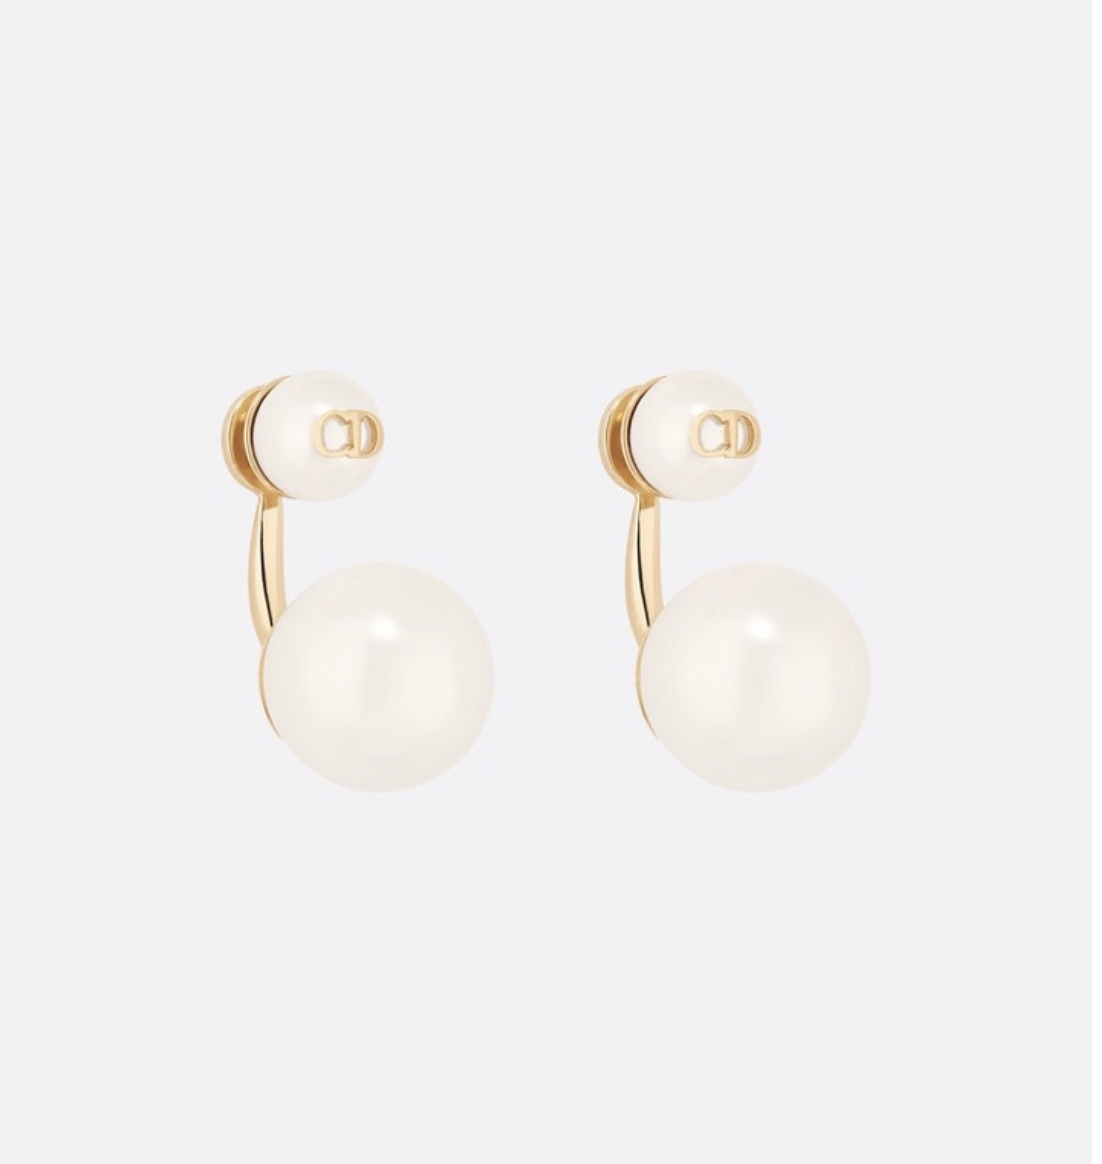 Primary image for Authentic Christian Dior 2019 TRIBALE EARRINGS